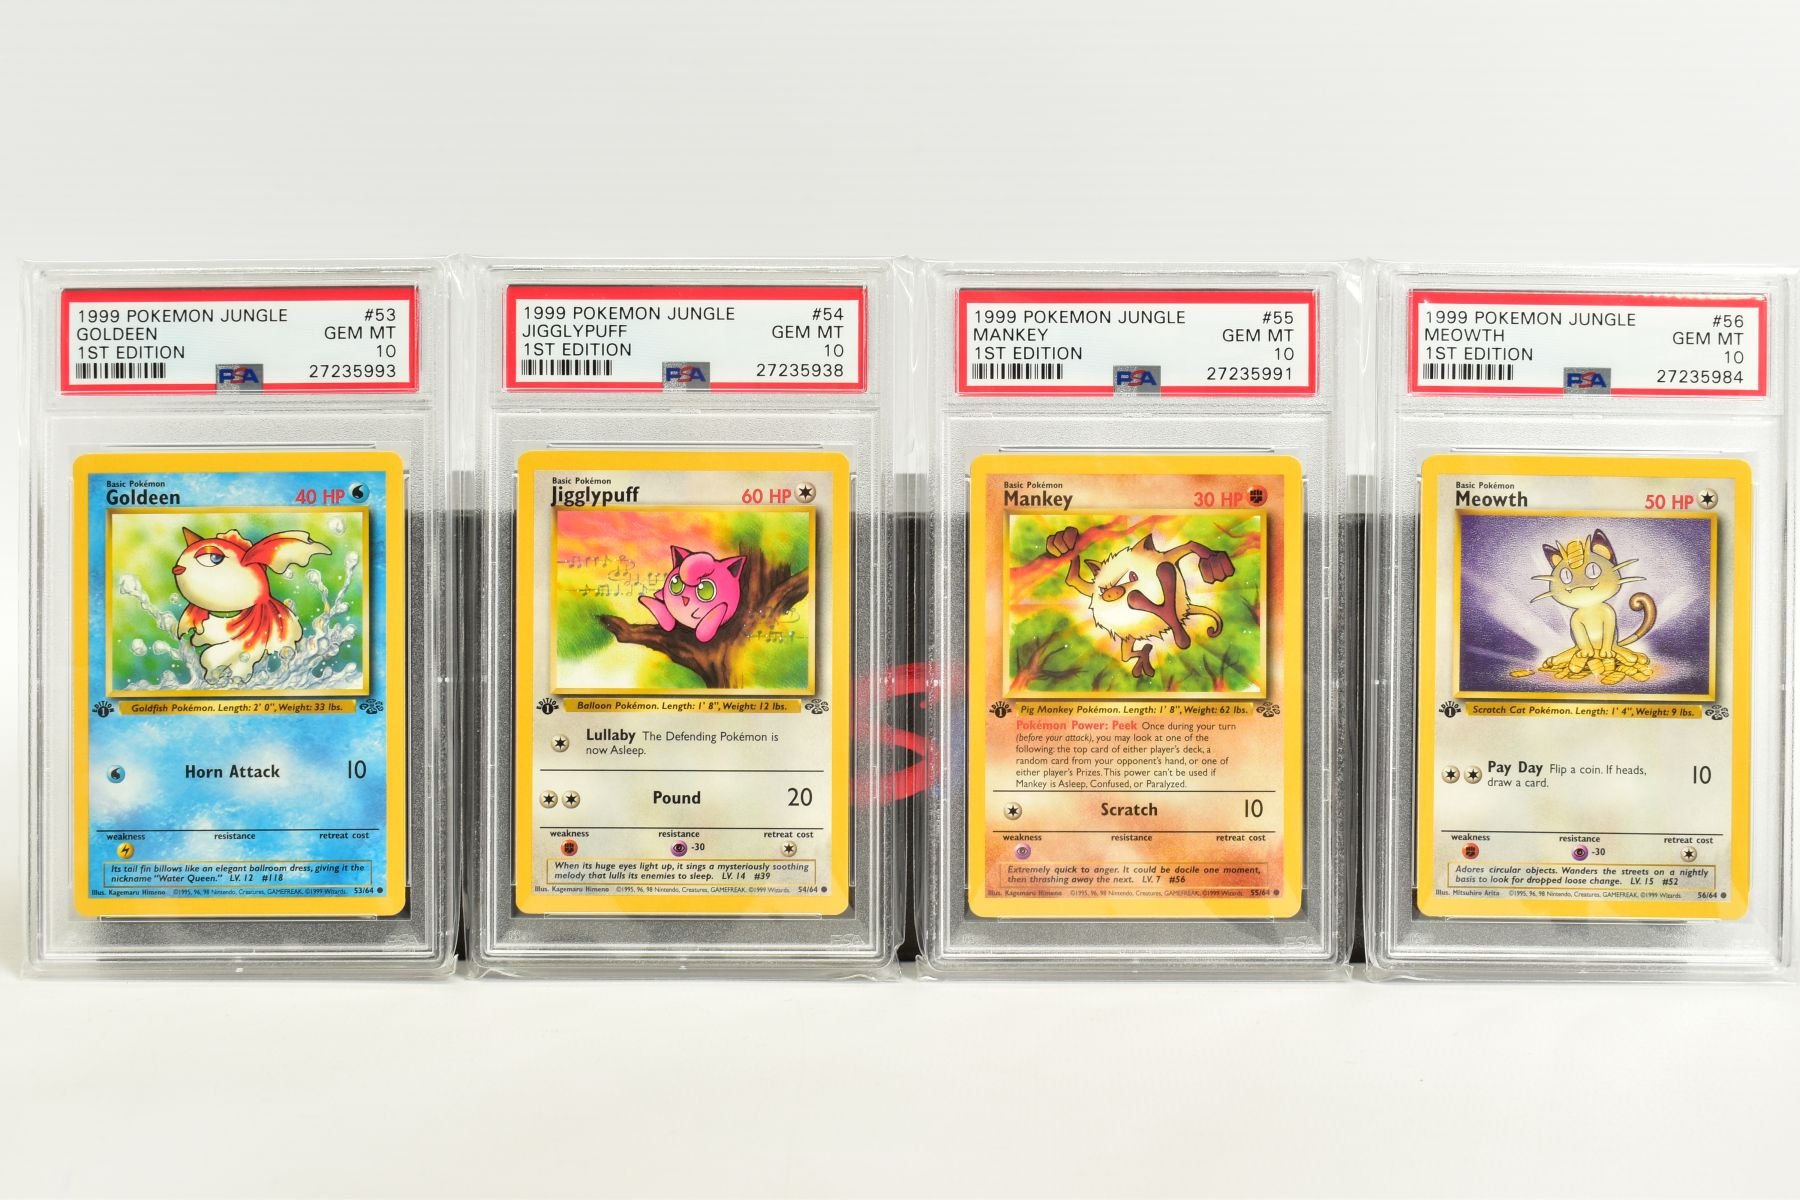 A QUANTITY OF PSA GRADED POKEMON 1ST EDITION JUNGLE SET CARDS, all are graded GEM MINT 10 and are - Image 11 of 13